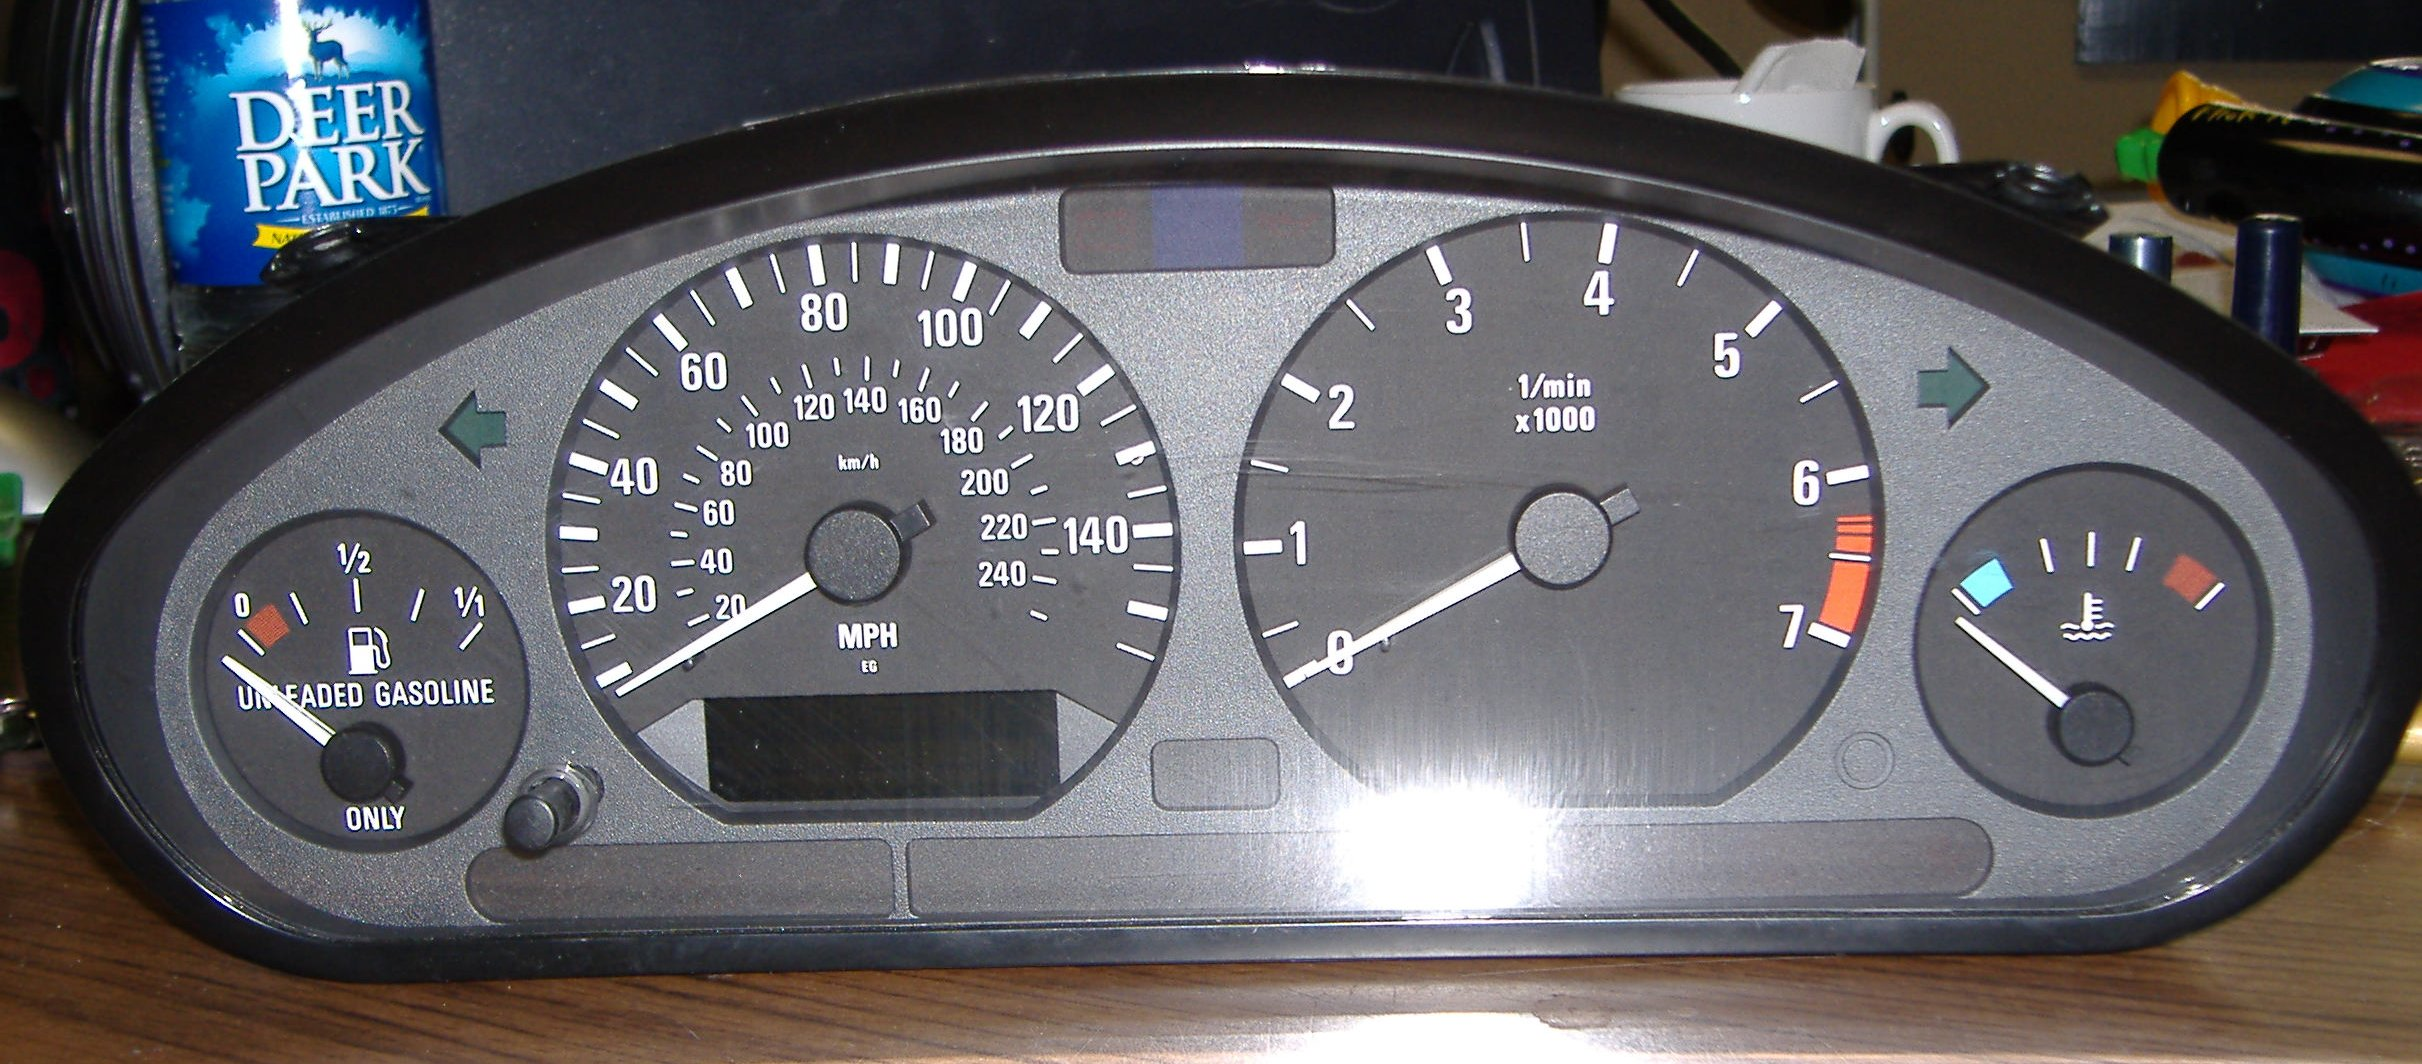 Vehicle Instrument Panel : Car dashboard english to spanish mechanics mech